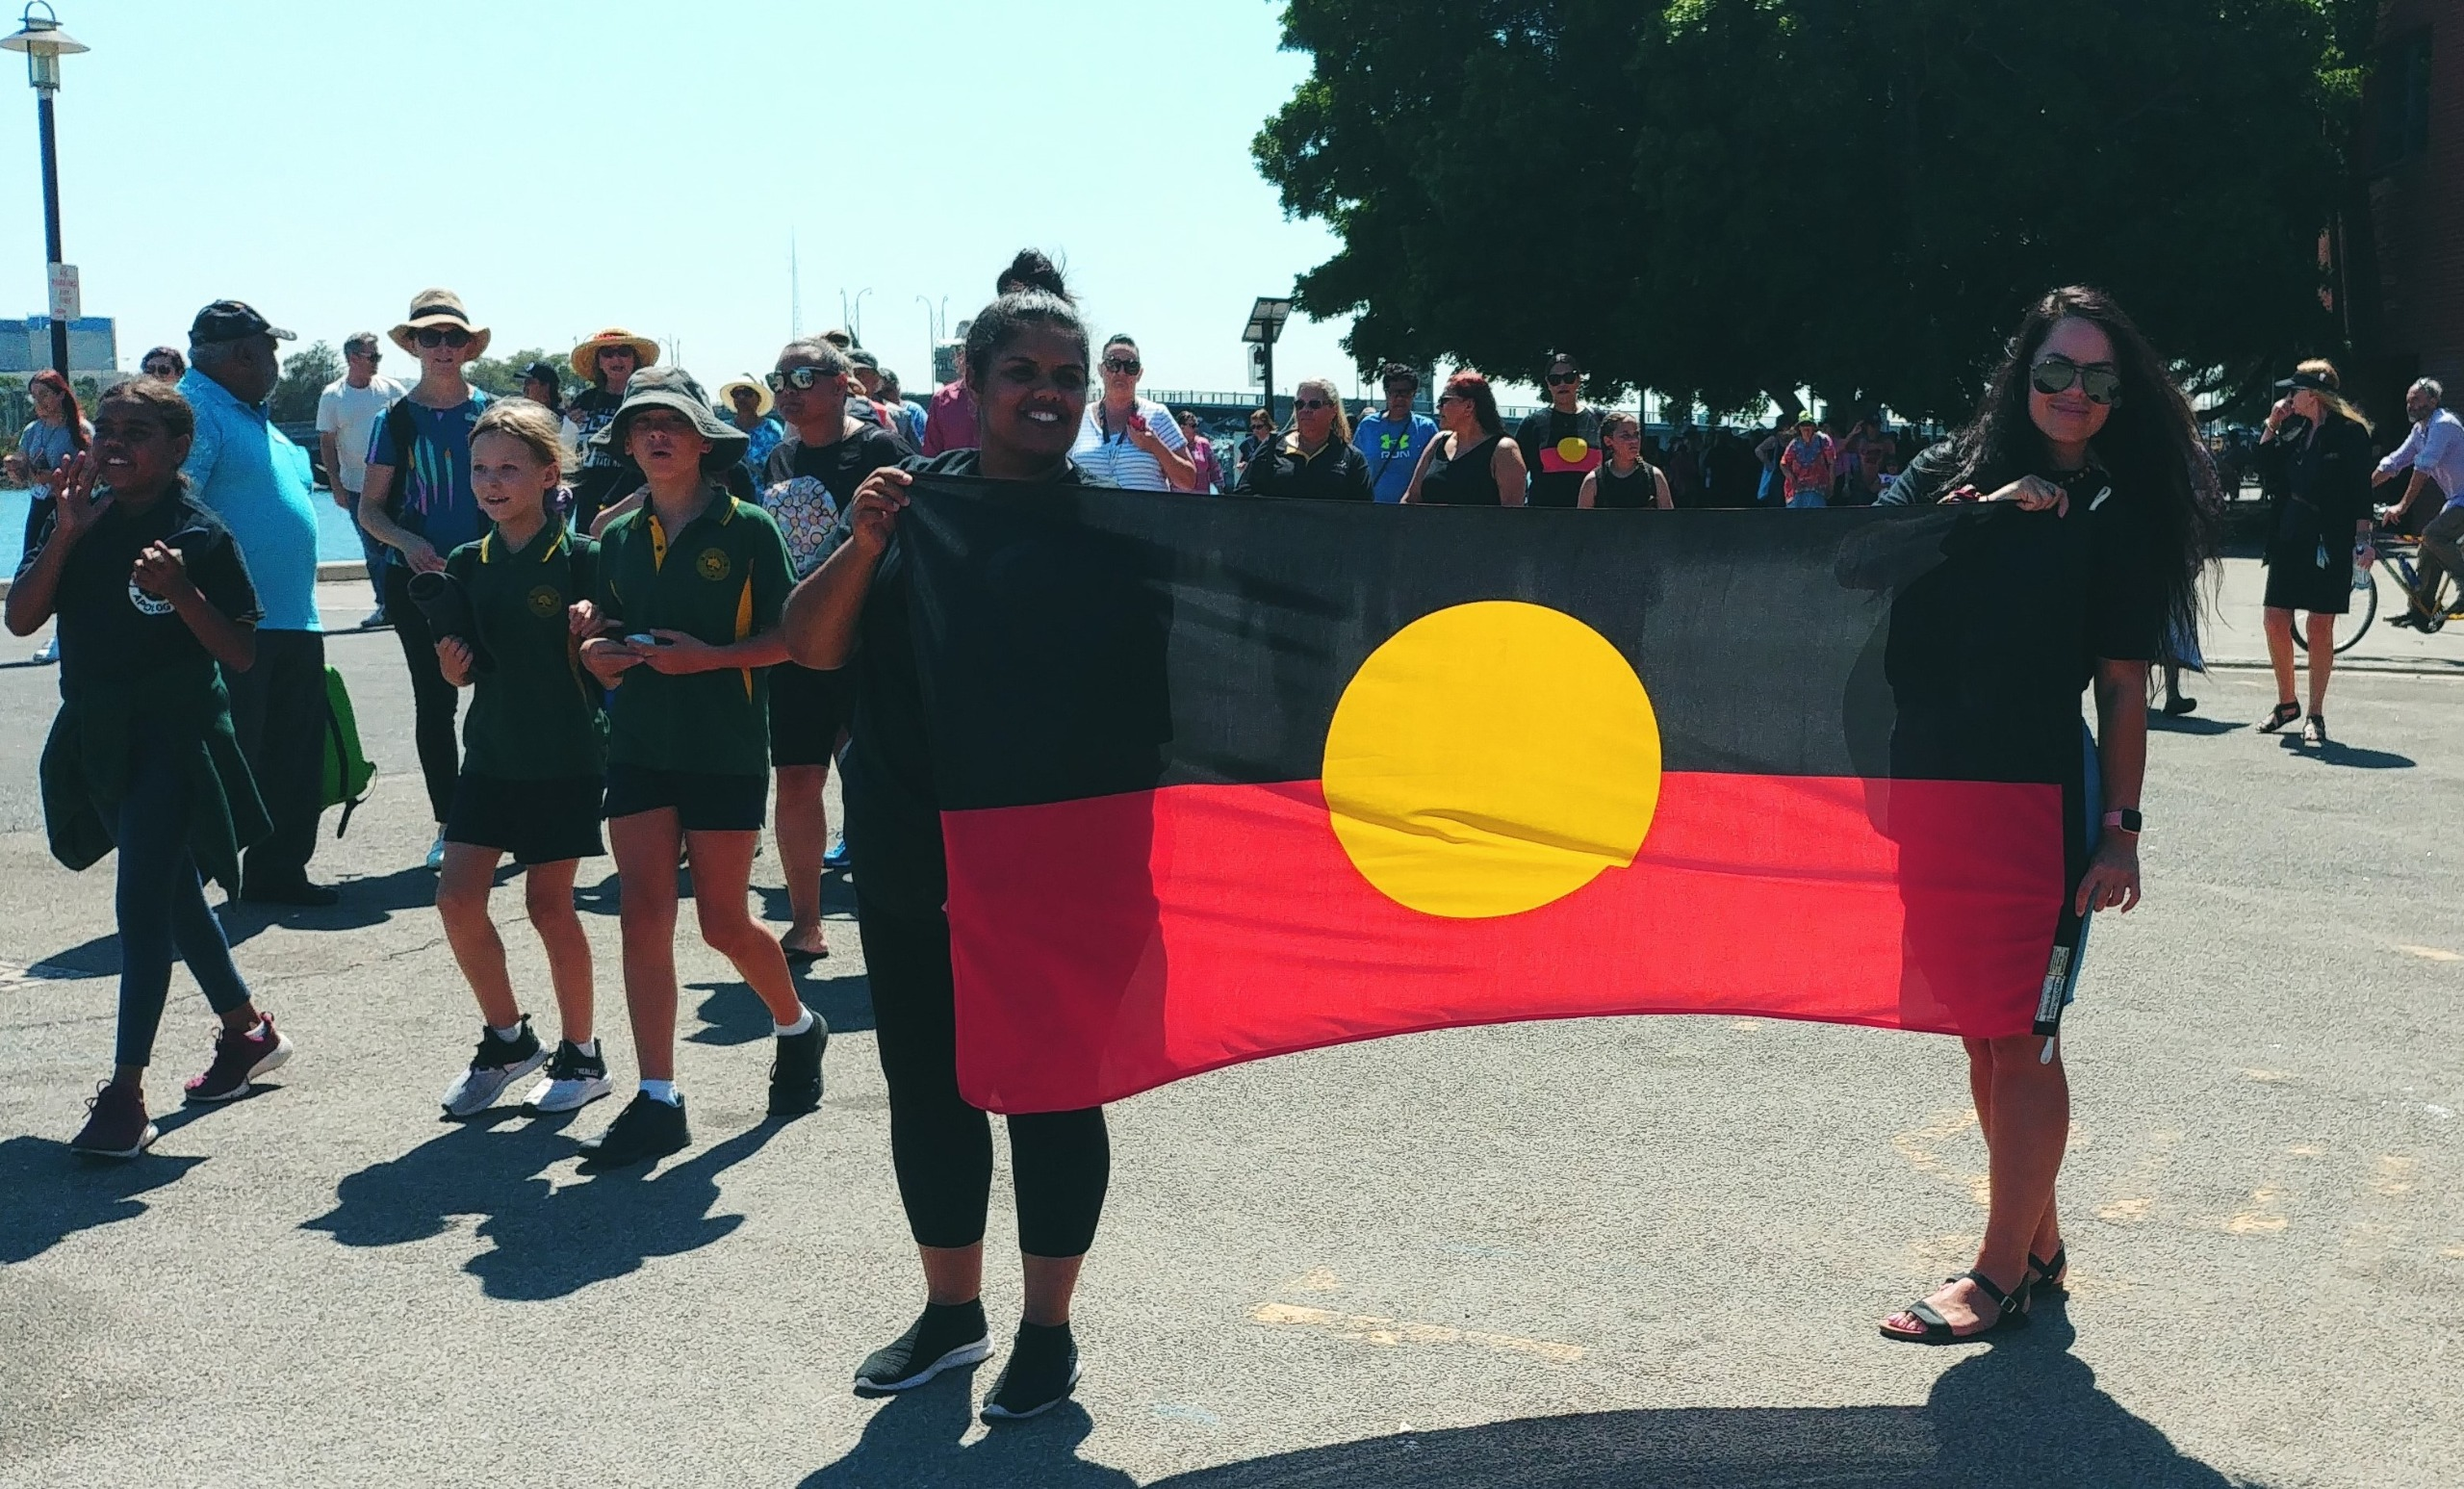 People holding Aboriginal Flag and walking in commemoration event